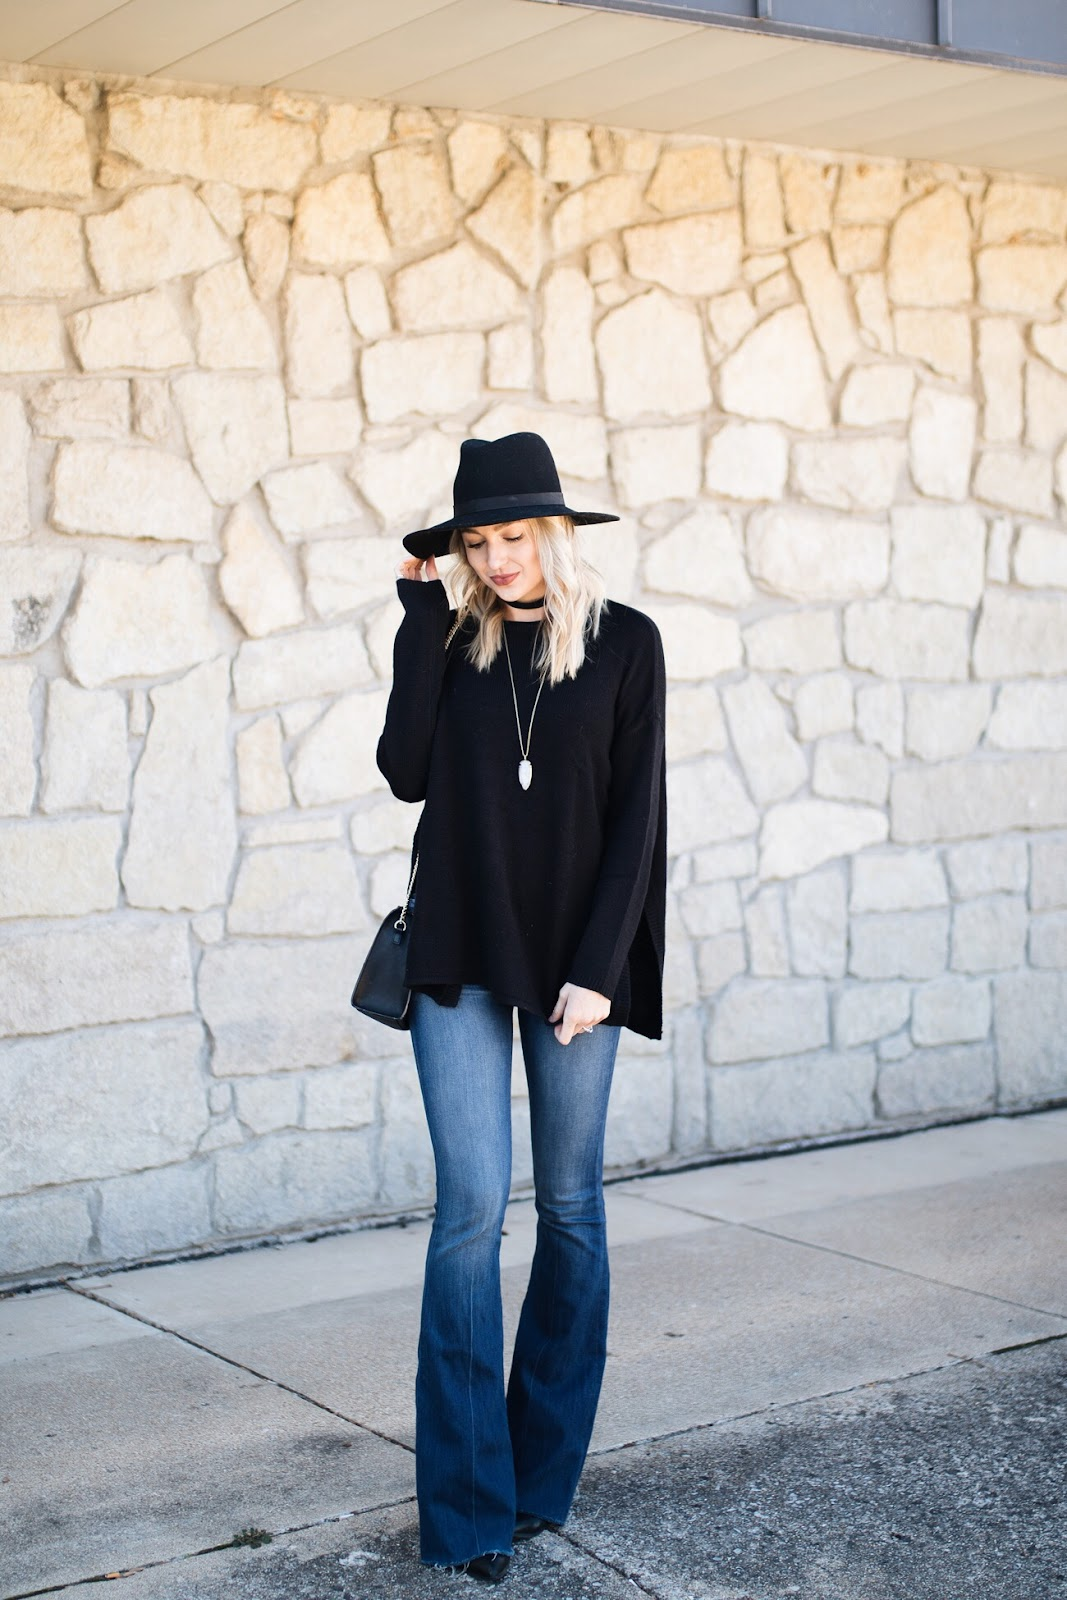 Flare jeans with an oversized sweater